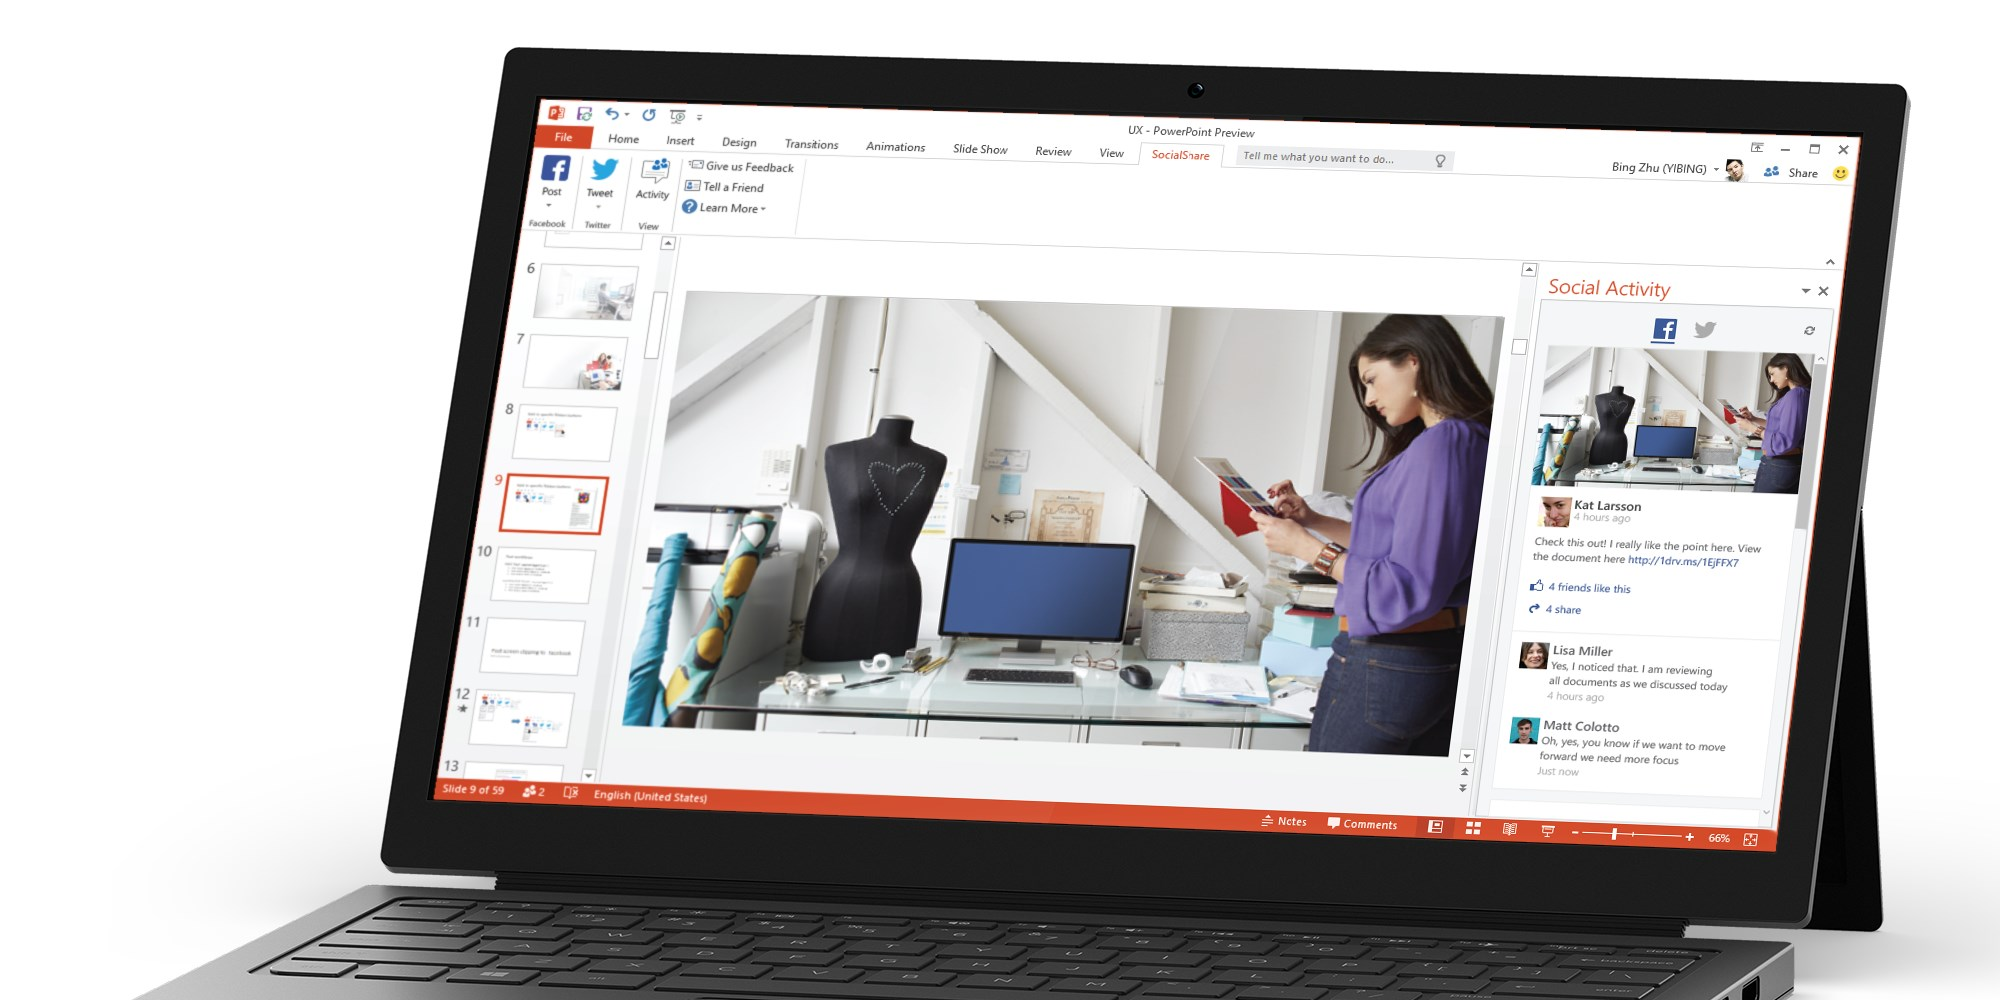 You can now share PowerPoint slides as photos and videos